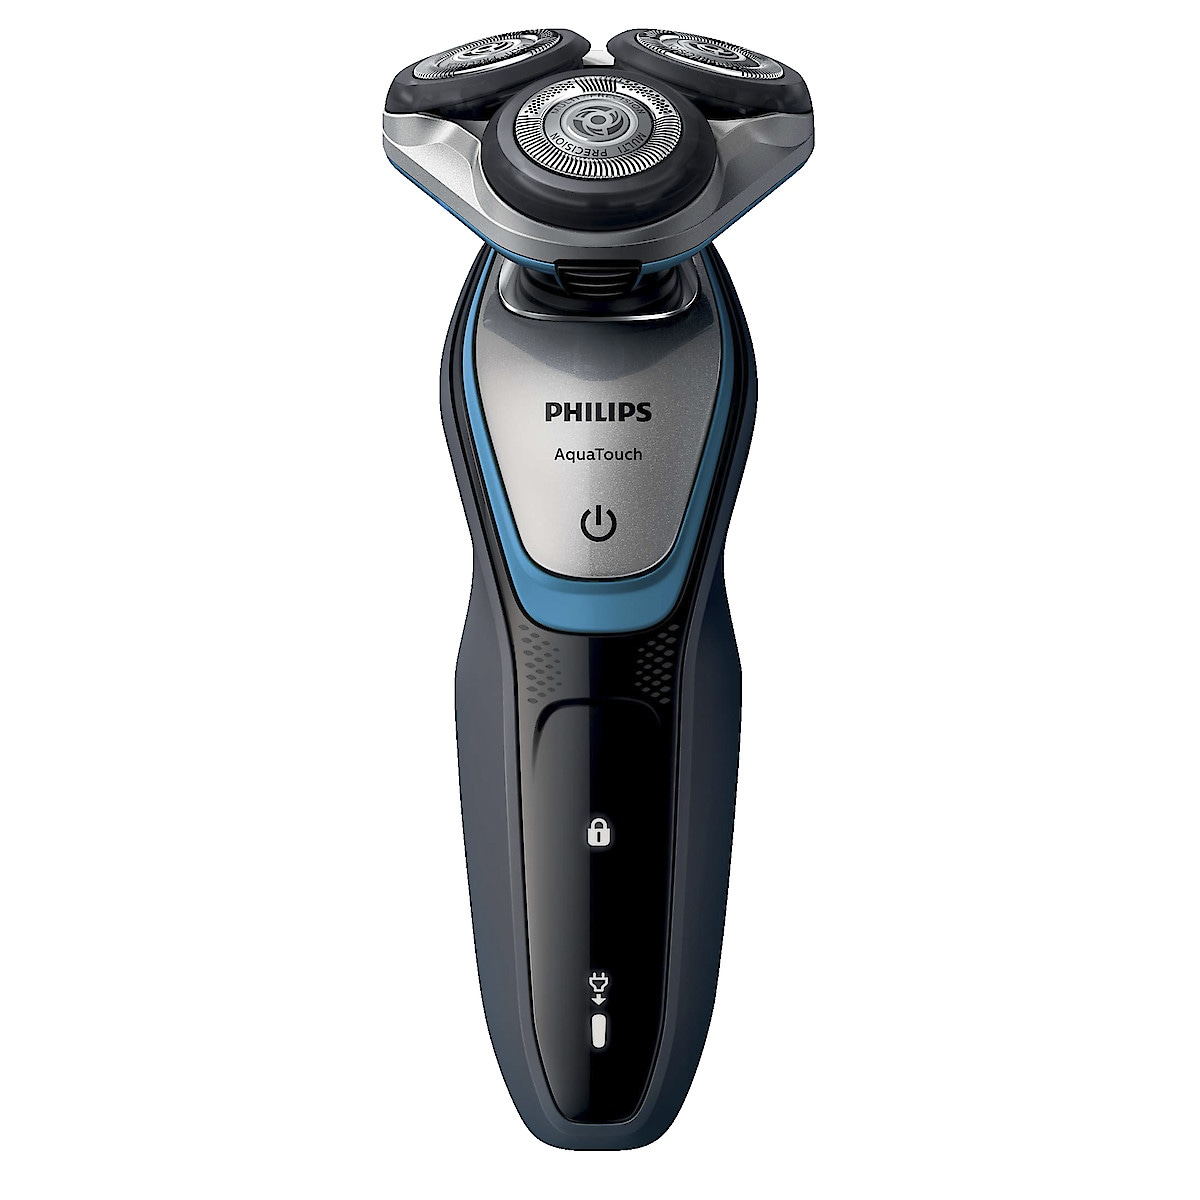 Philips AquaTouch S5400/06 barbermaskin